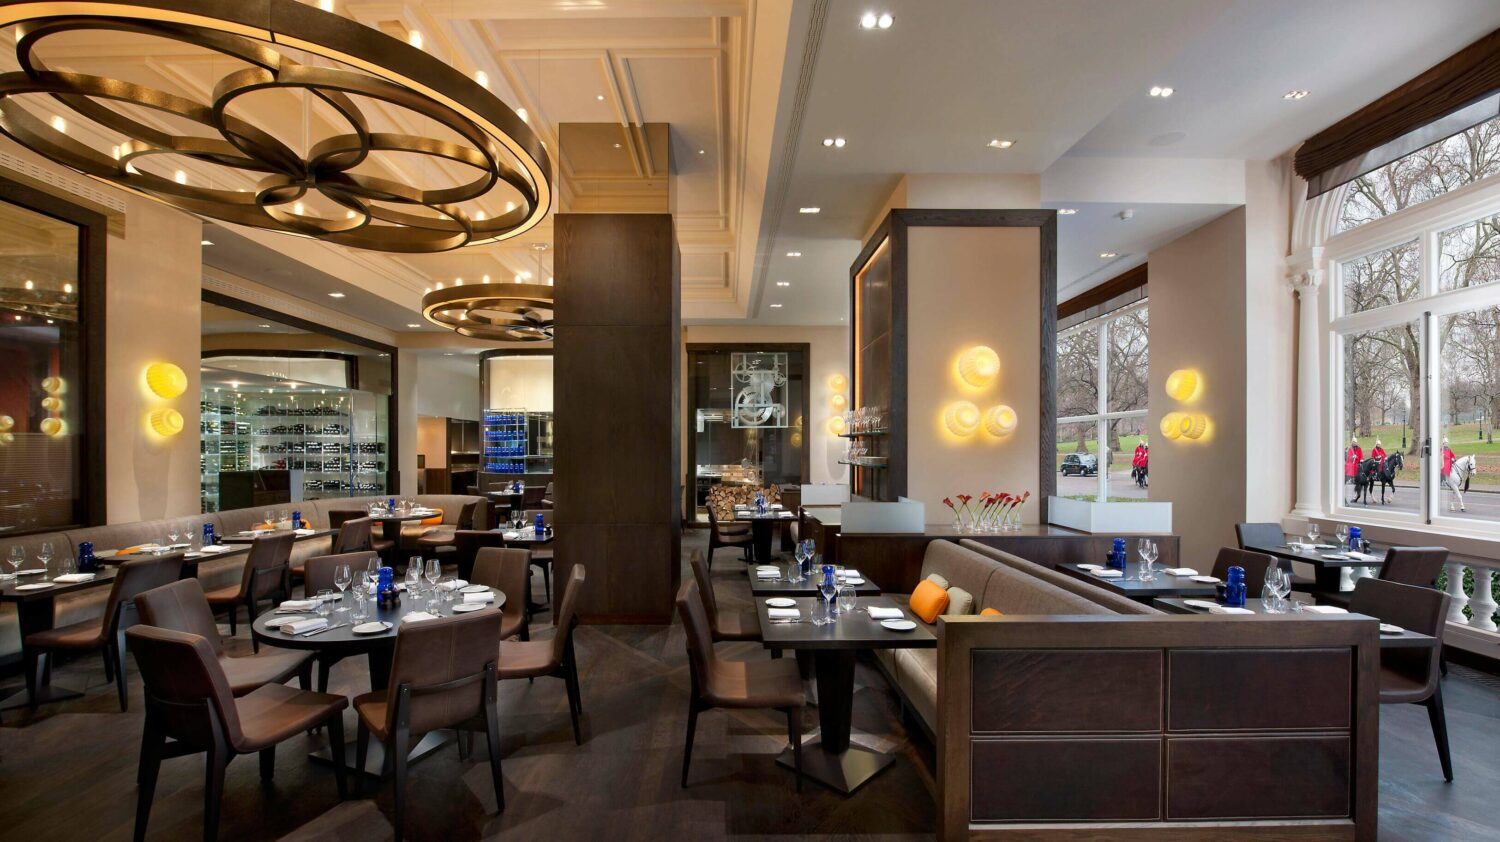 heston blumenthal restaurant-mandarin oriental london